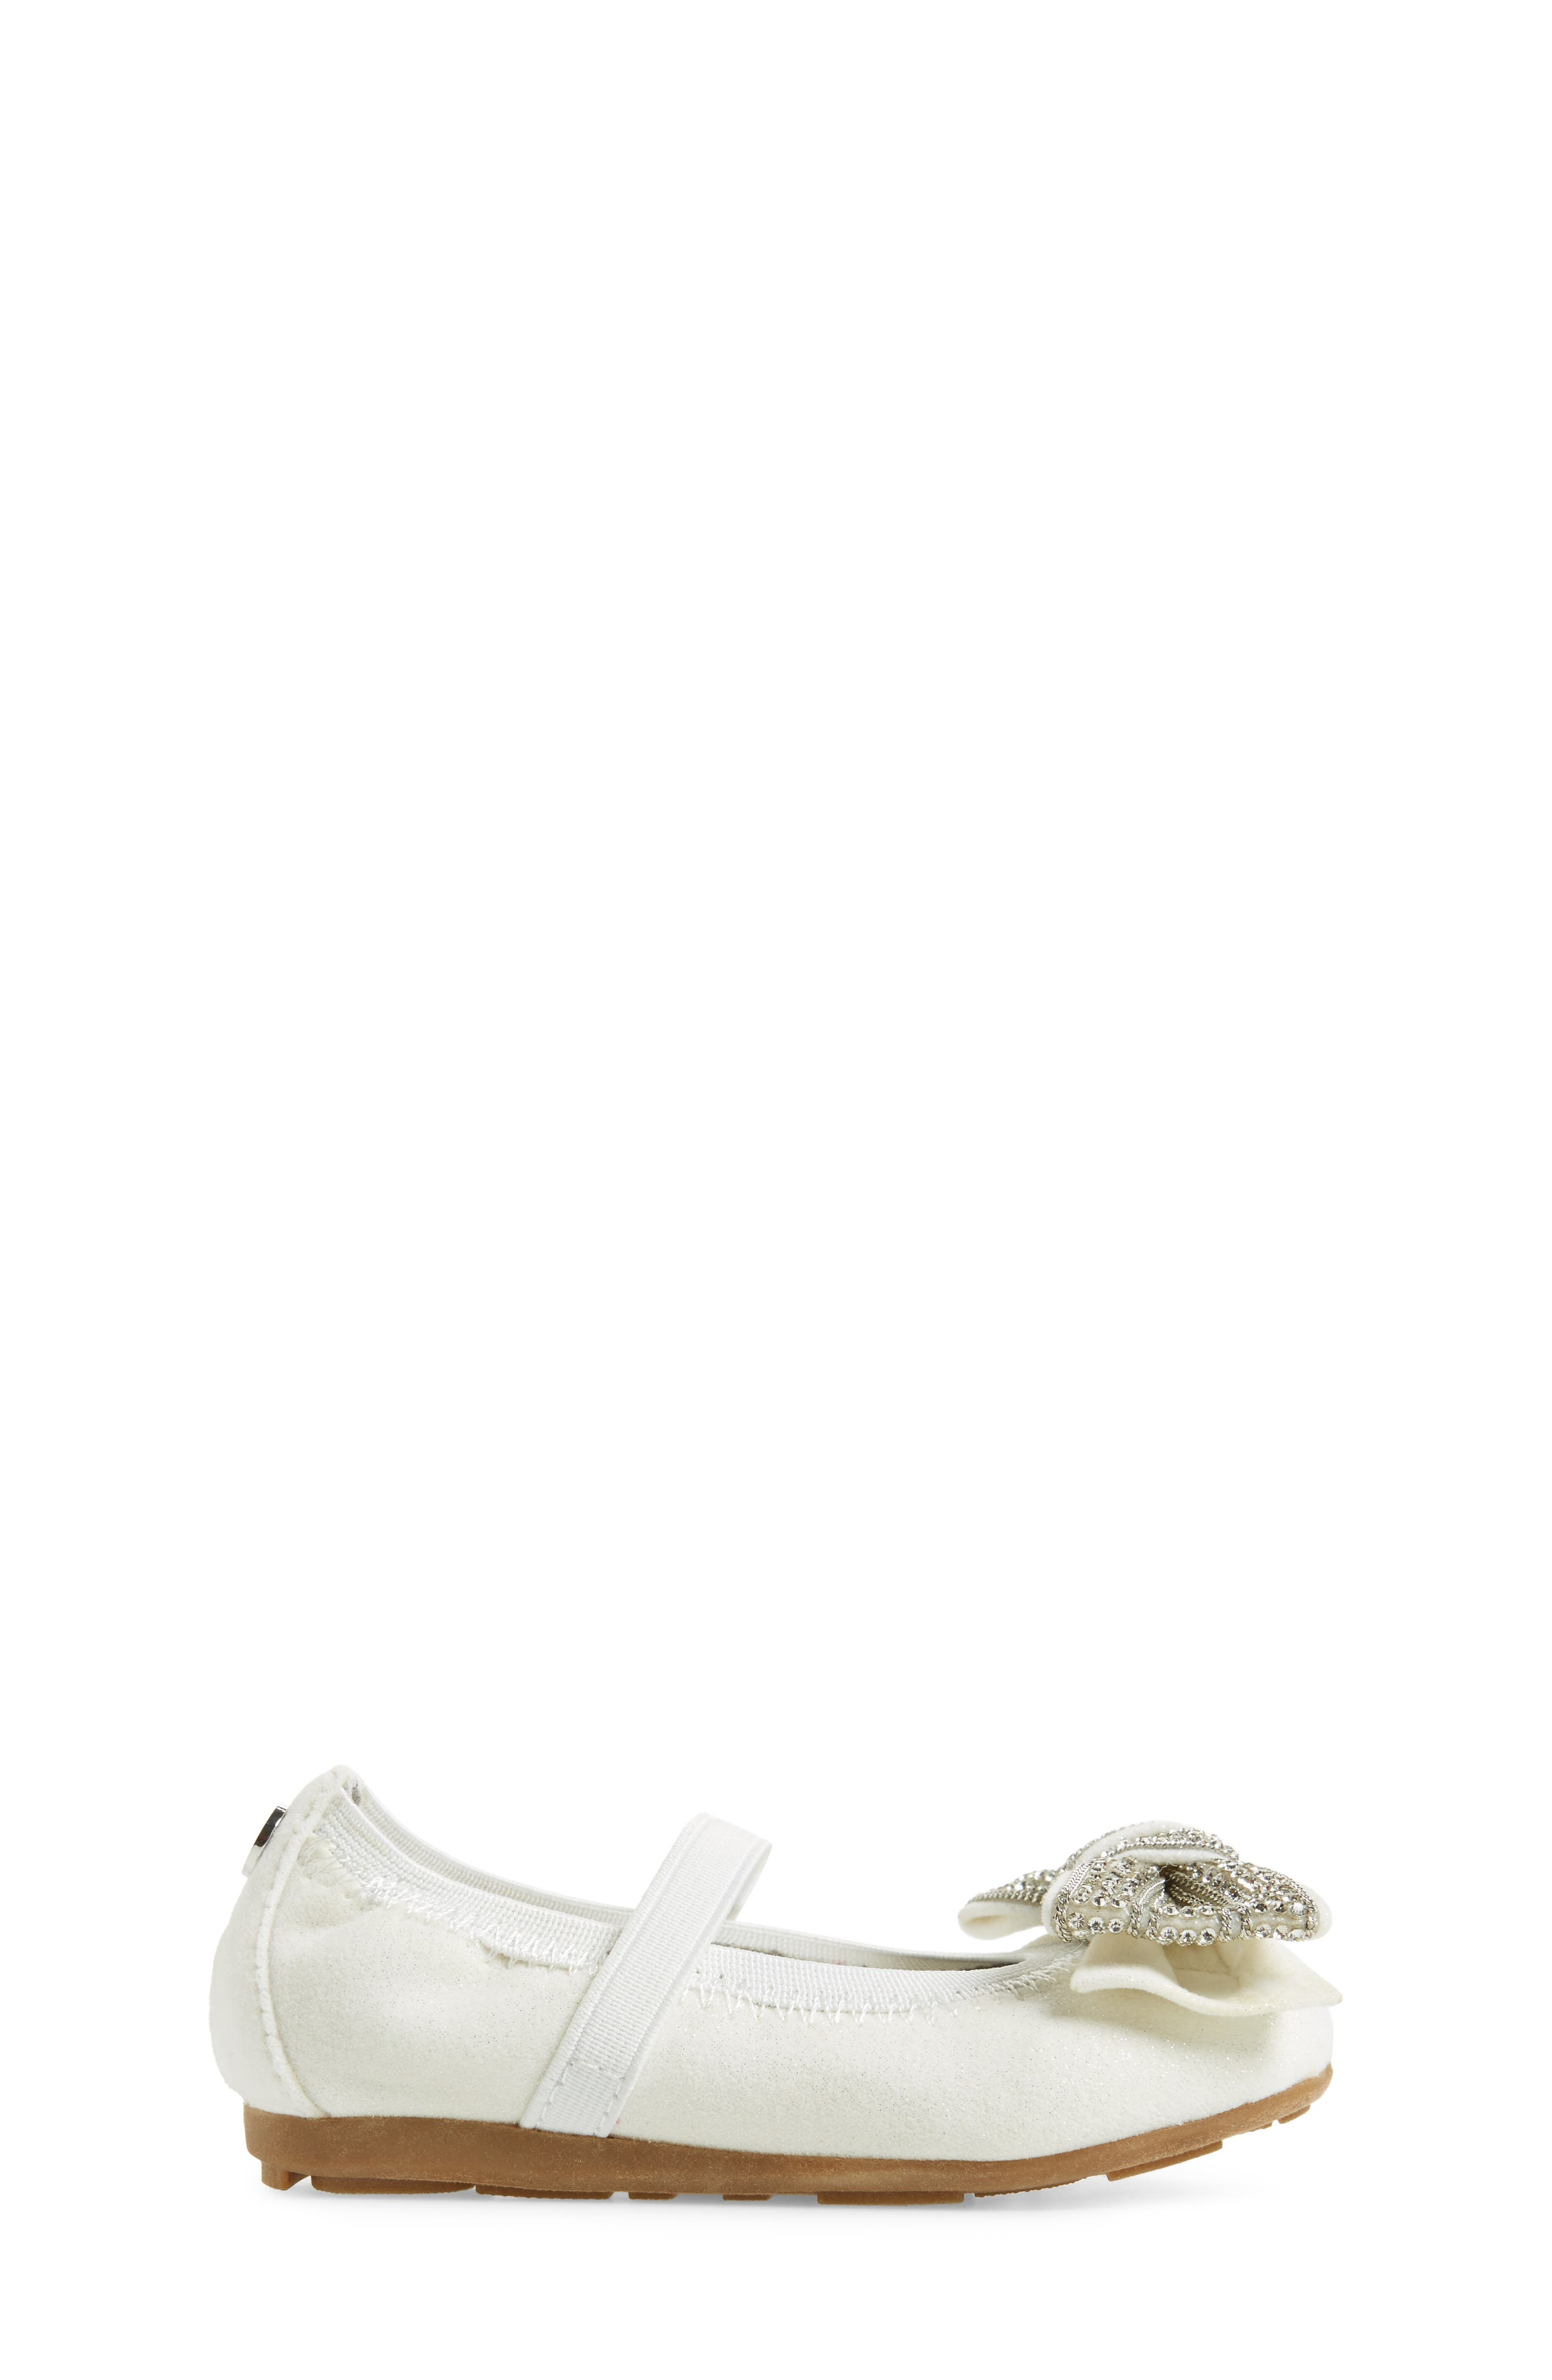 Fannie Embellished Bow Mary Jane Flat,                             Alternate thumbnail 3, color,                             White